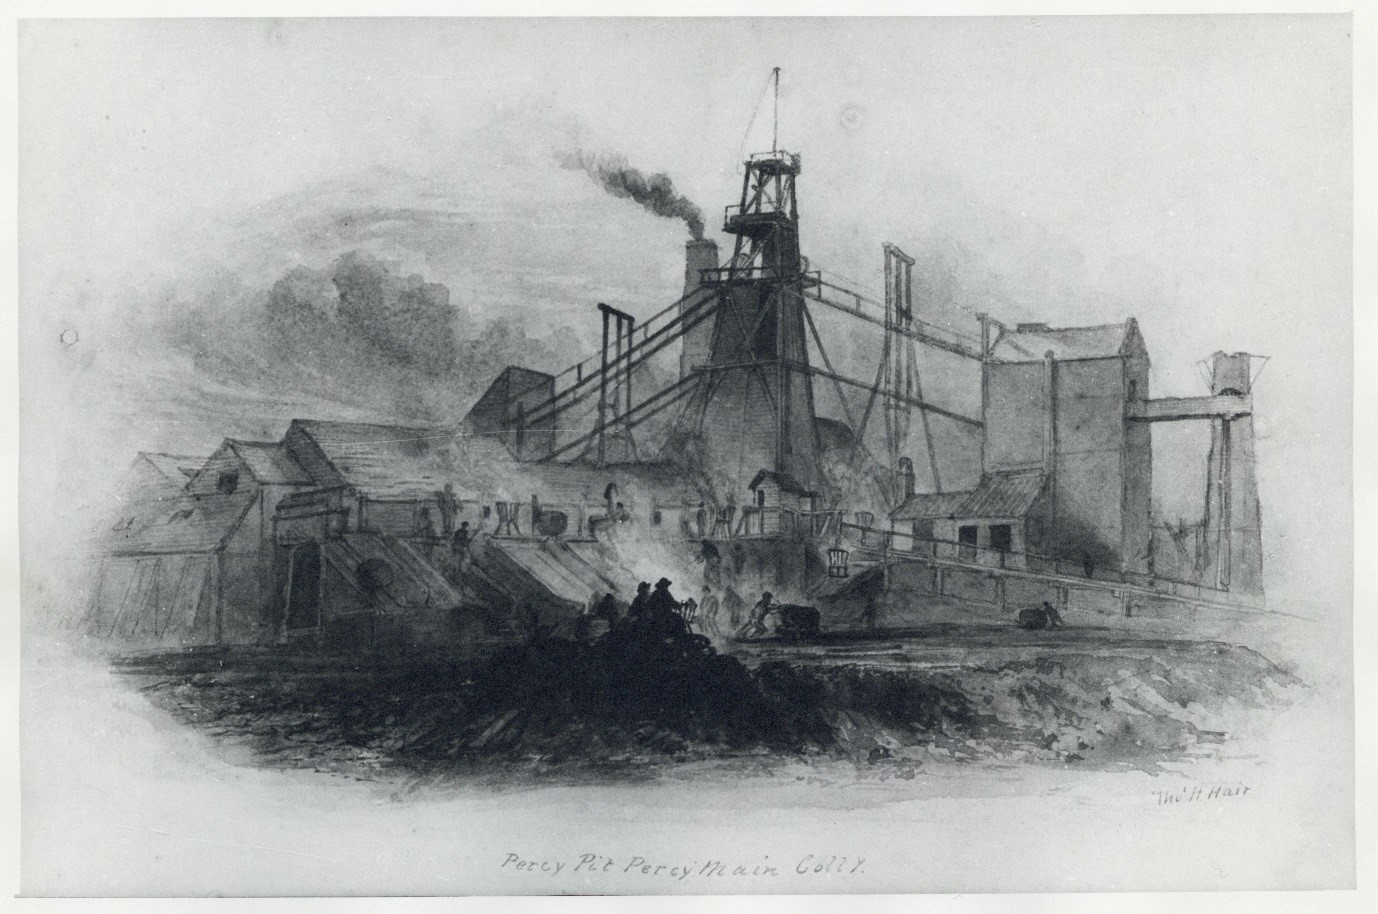 Percy Pit, Percy Main Colliery, by Thomas Hair. Date unknown.